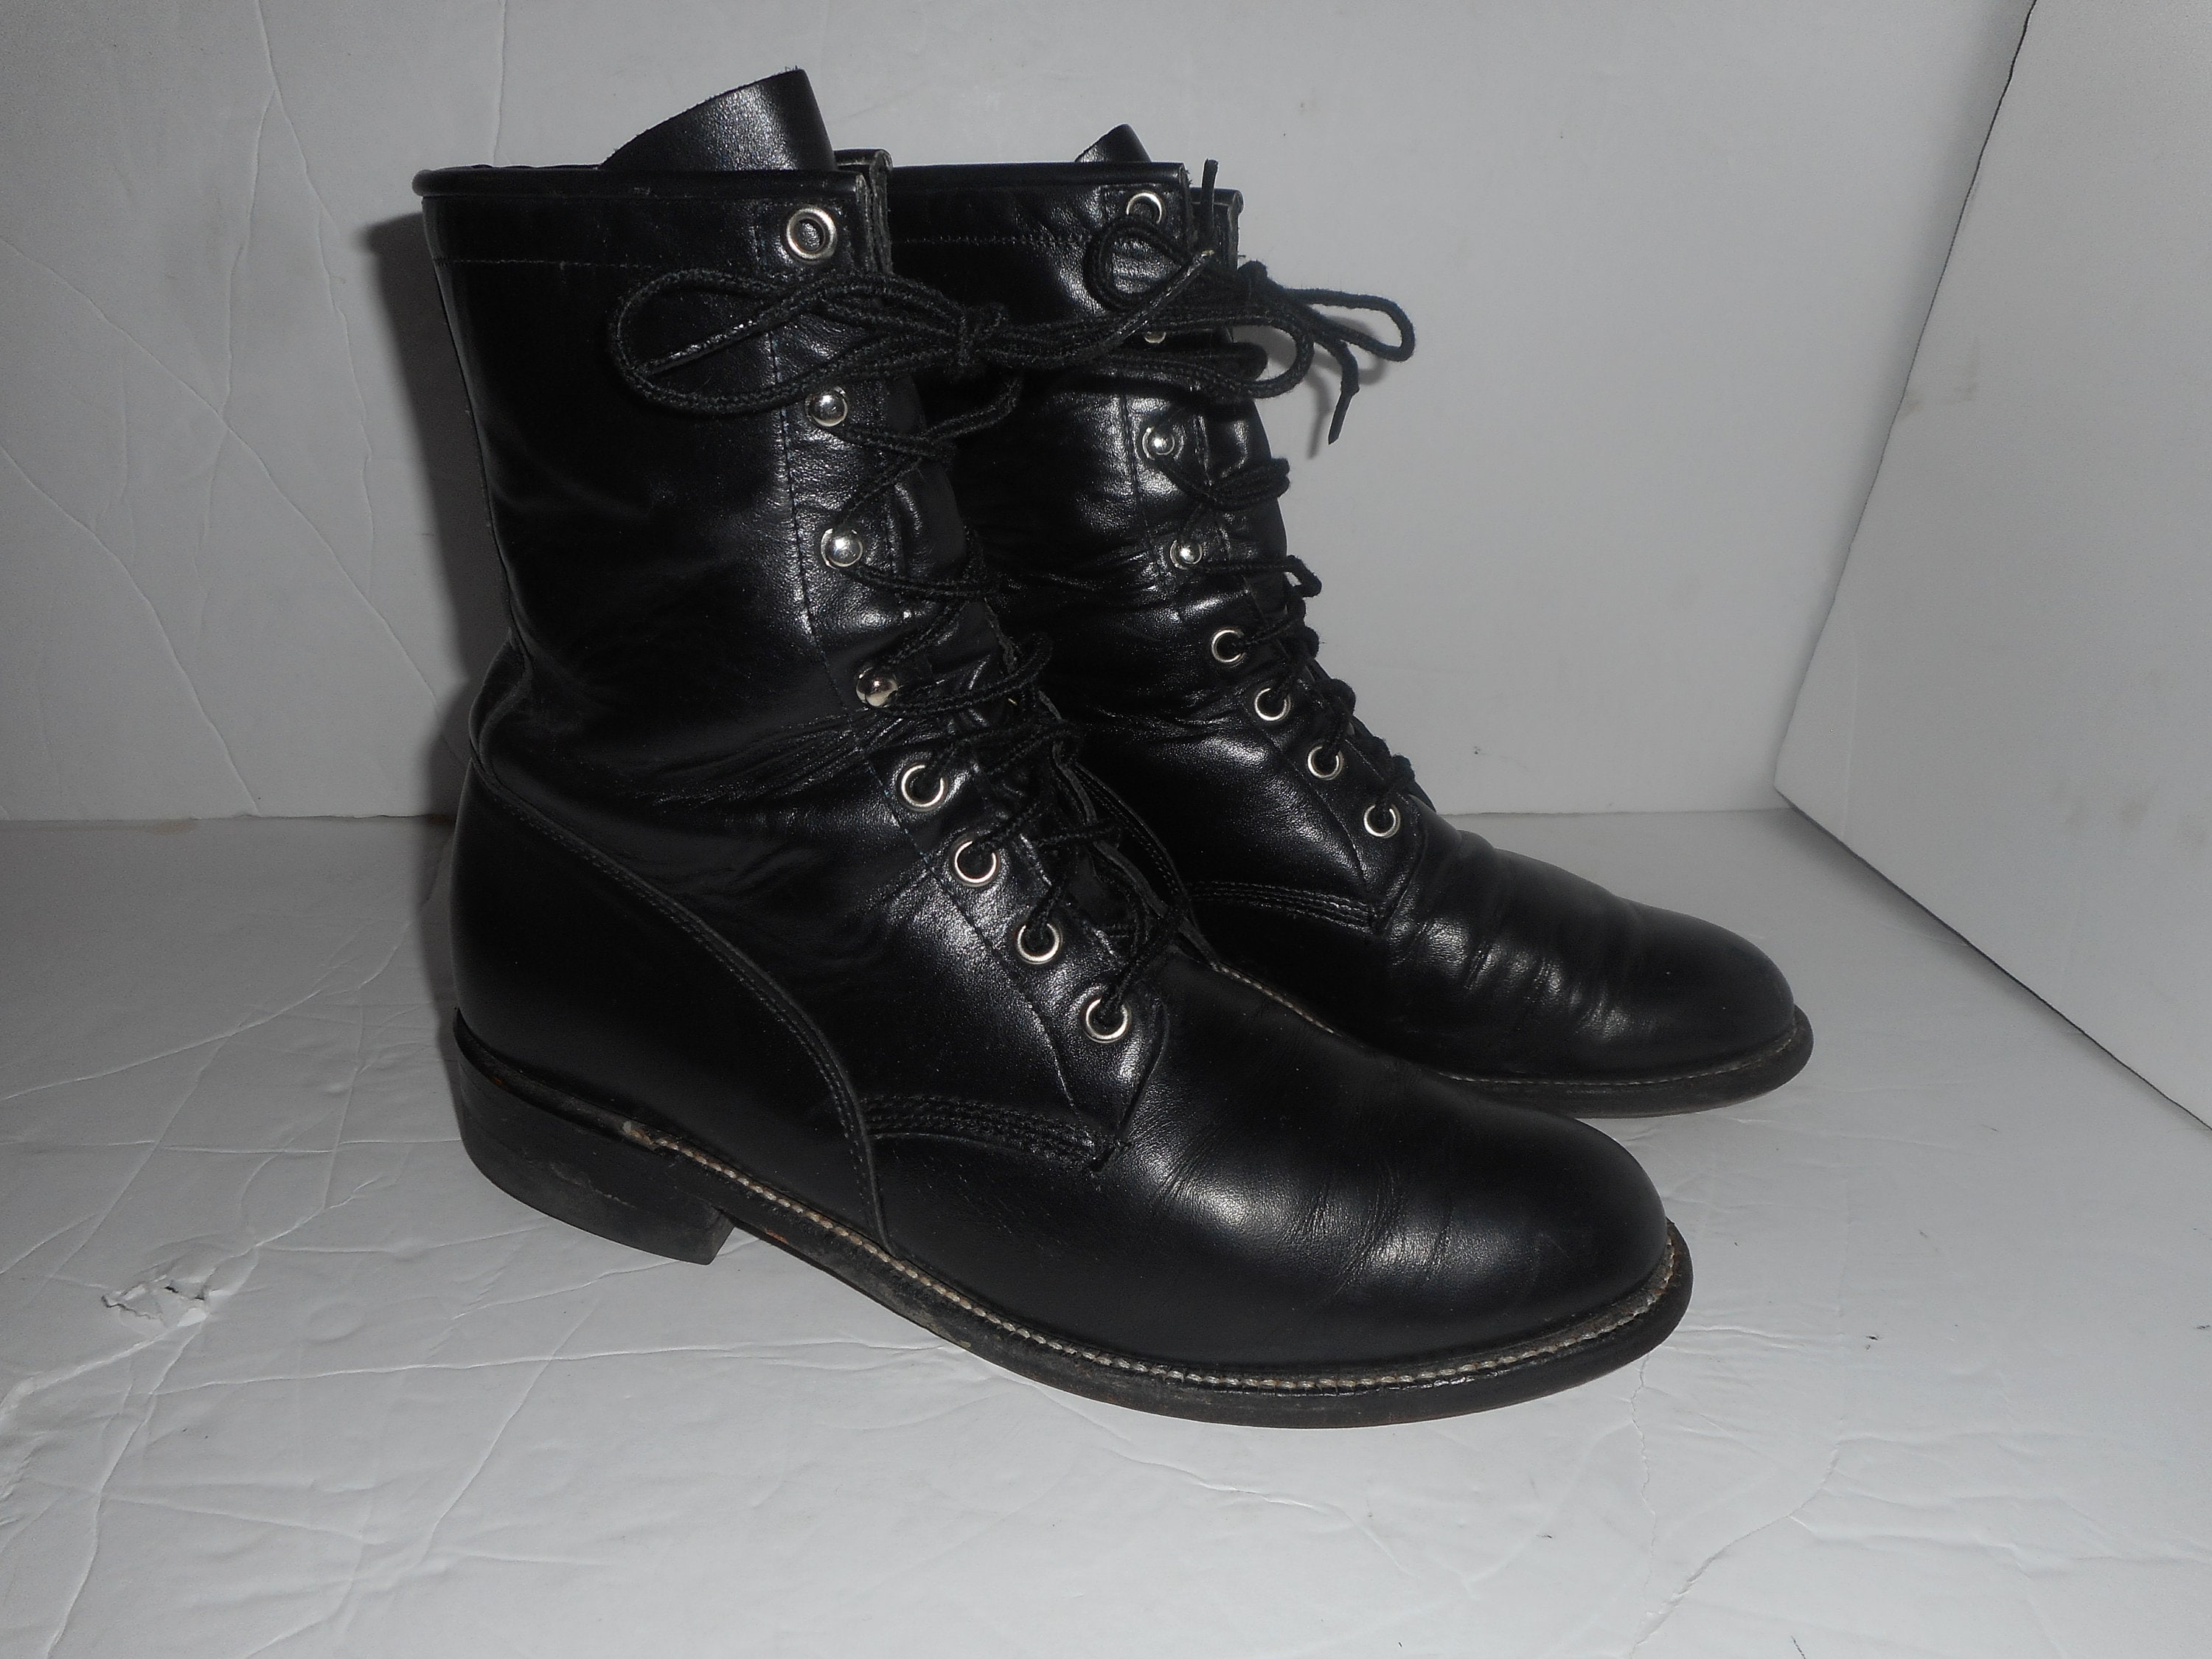 caf85f362fb 20% OFF Vintage Justin Roper Leather Lacers Women Roper Riding Granny Boots  Size 8 B **NICE**